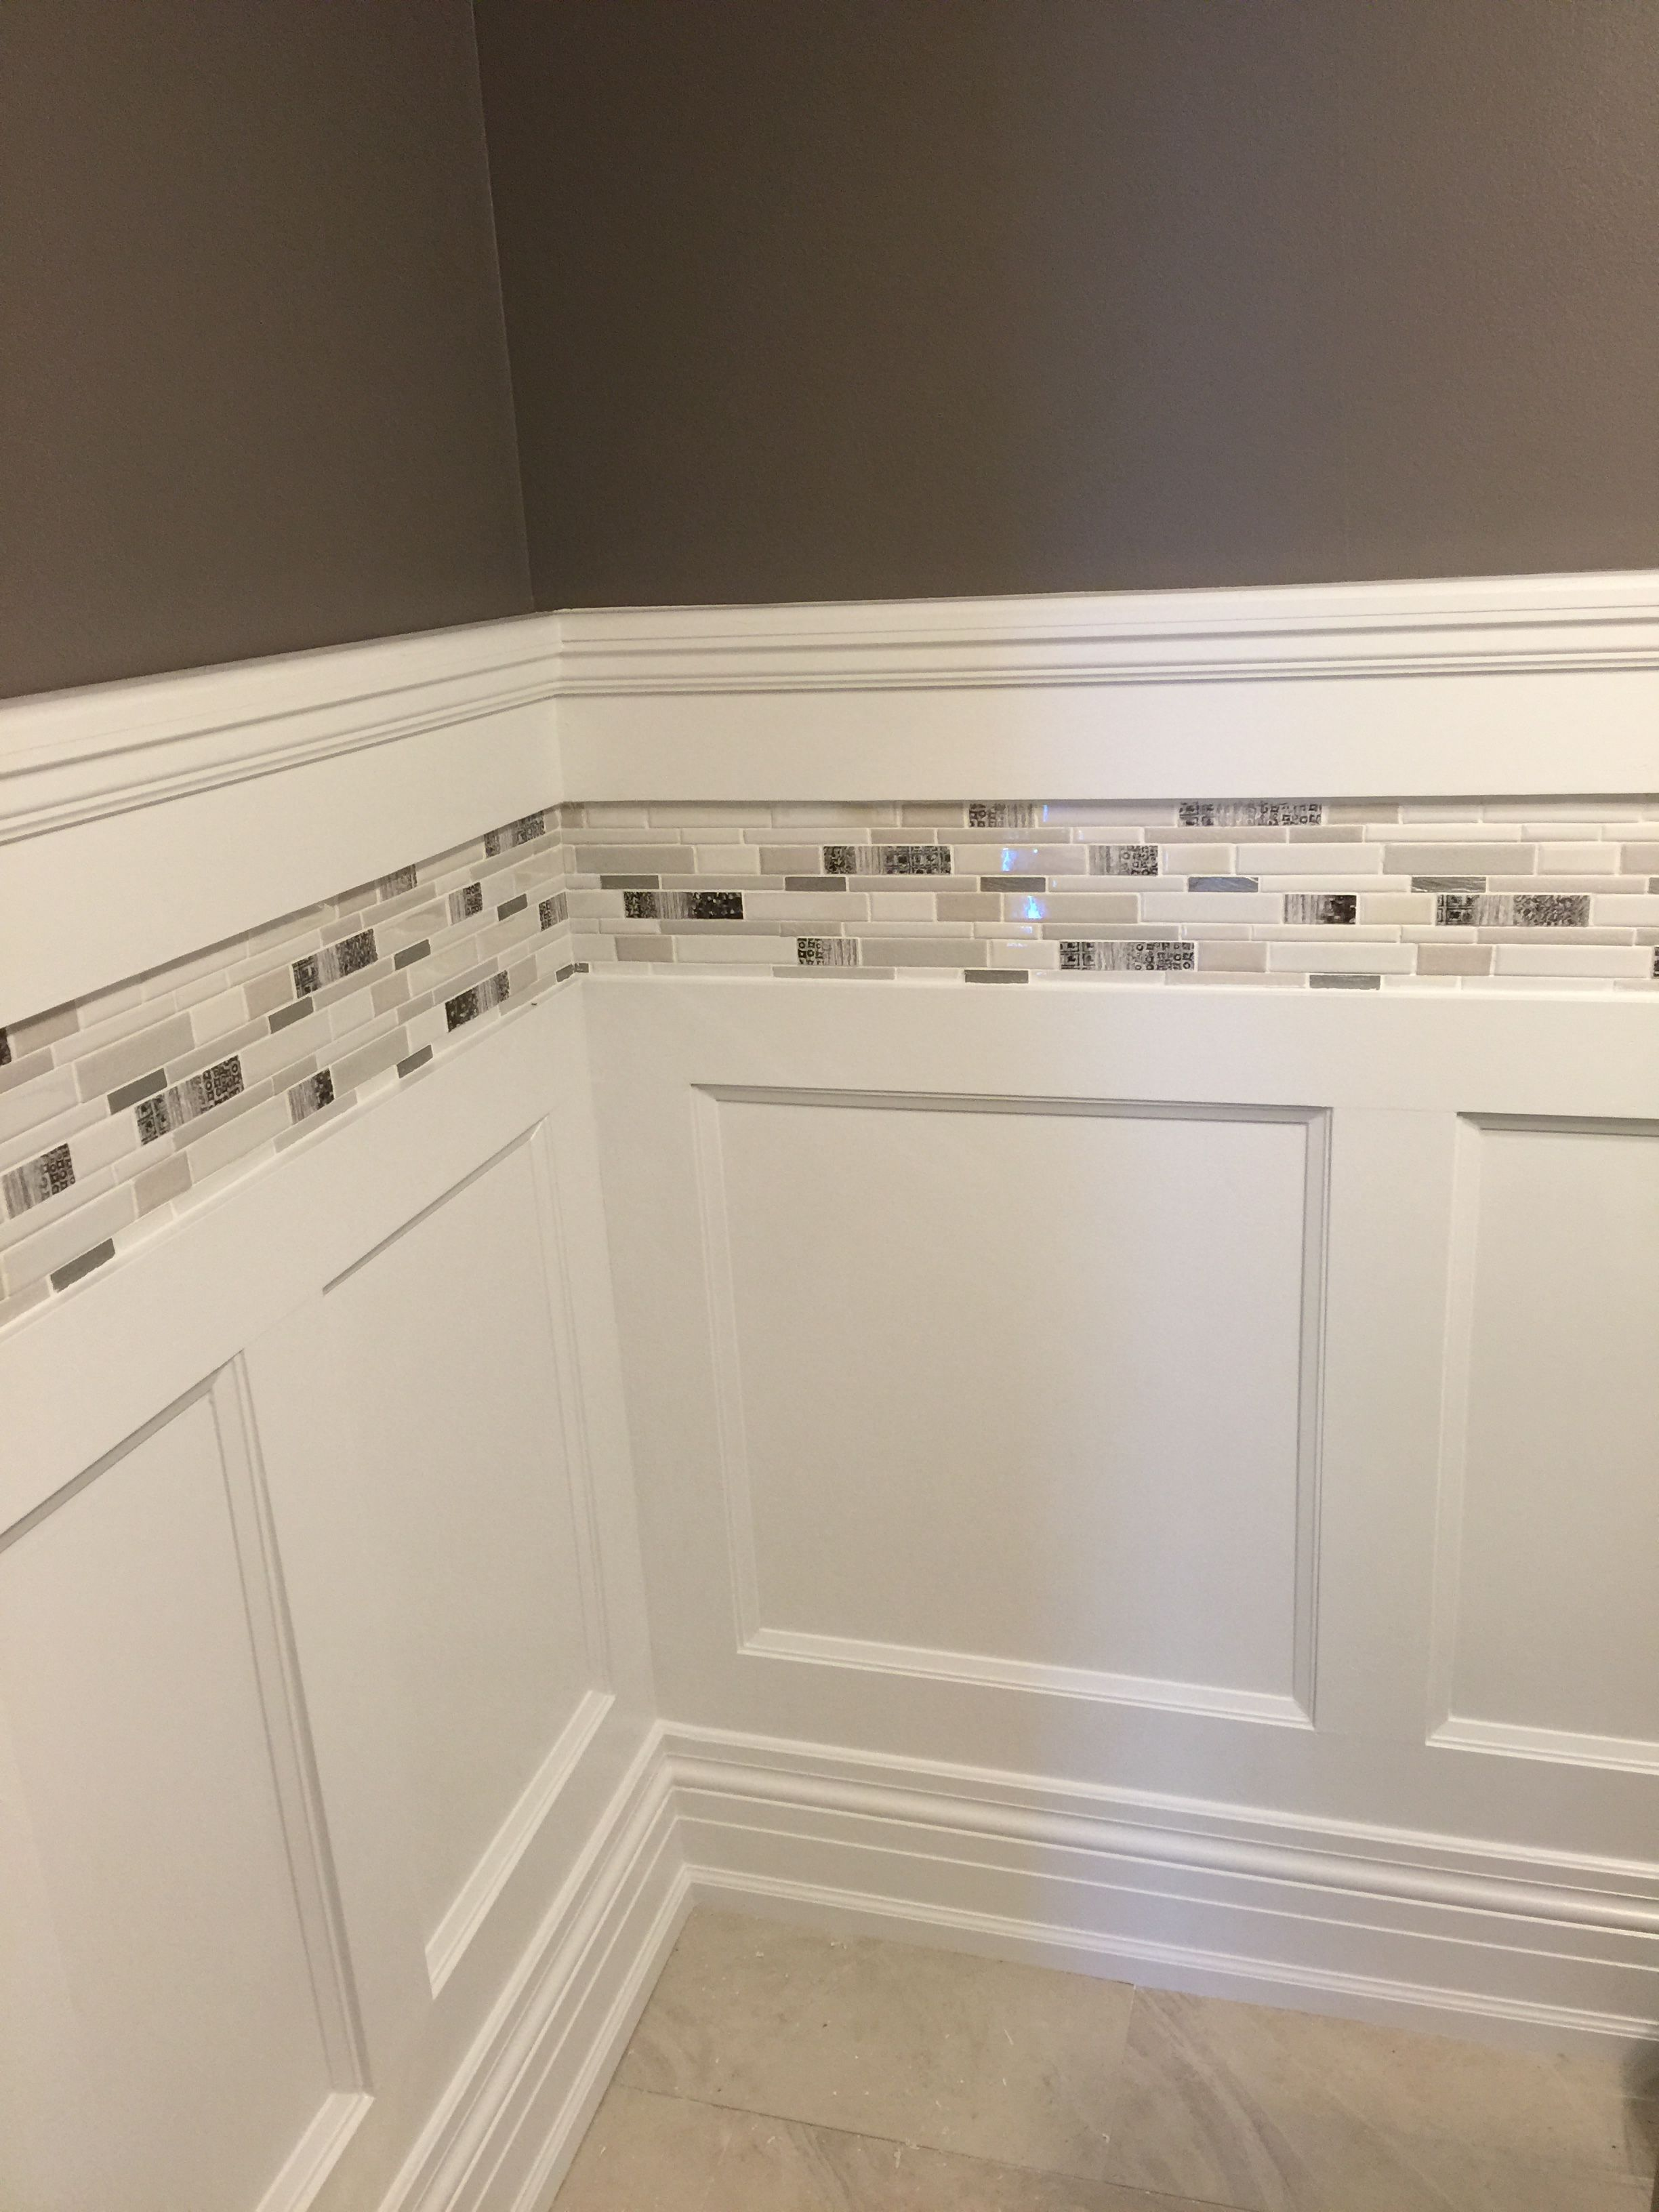 Wainscoting Trim Tile With Chair Rail House Bathroom Home Bathrooms Remodel